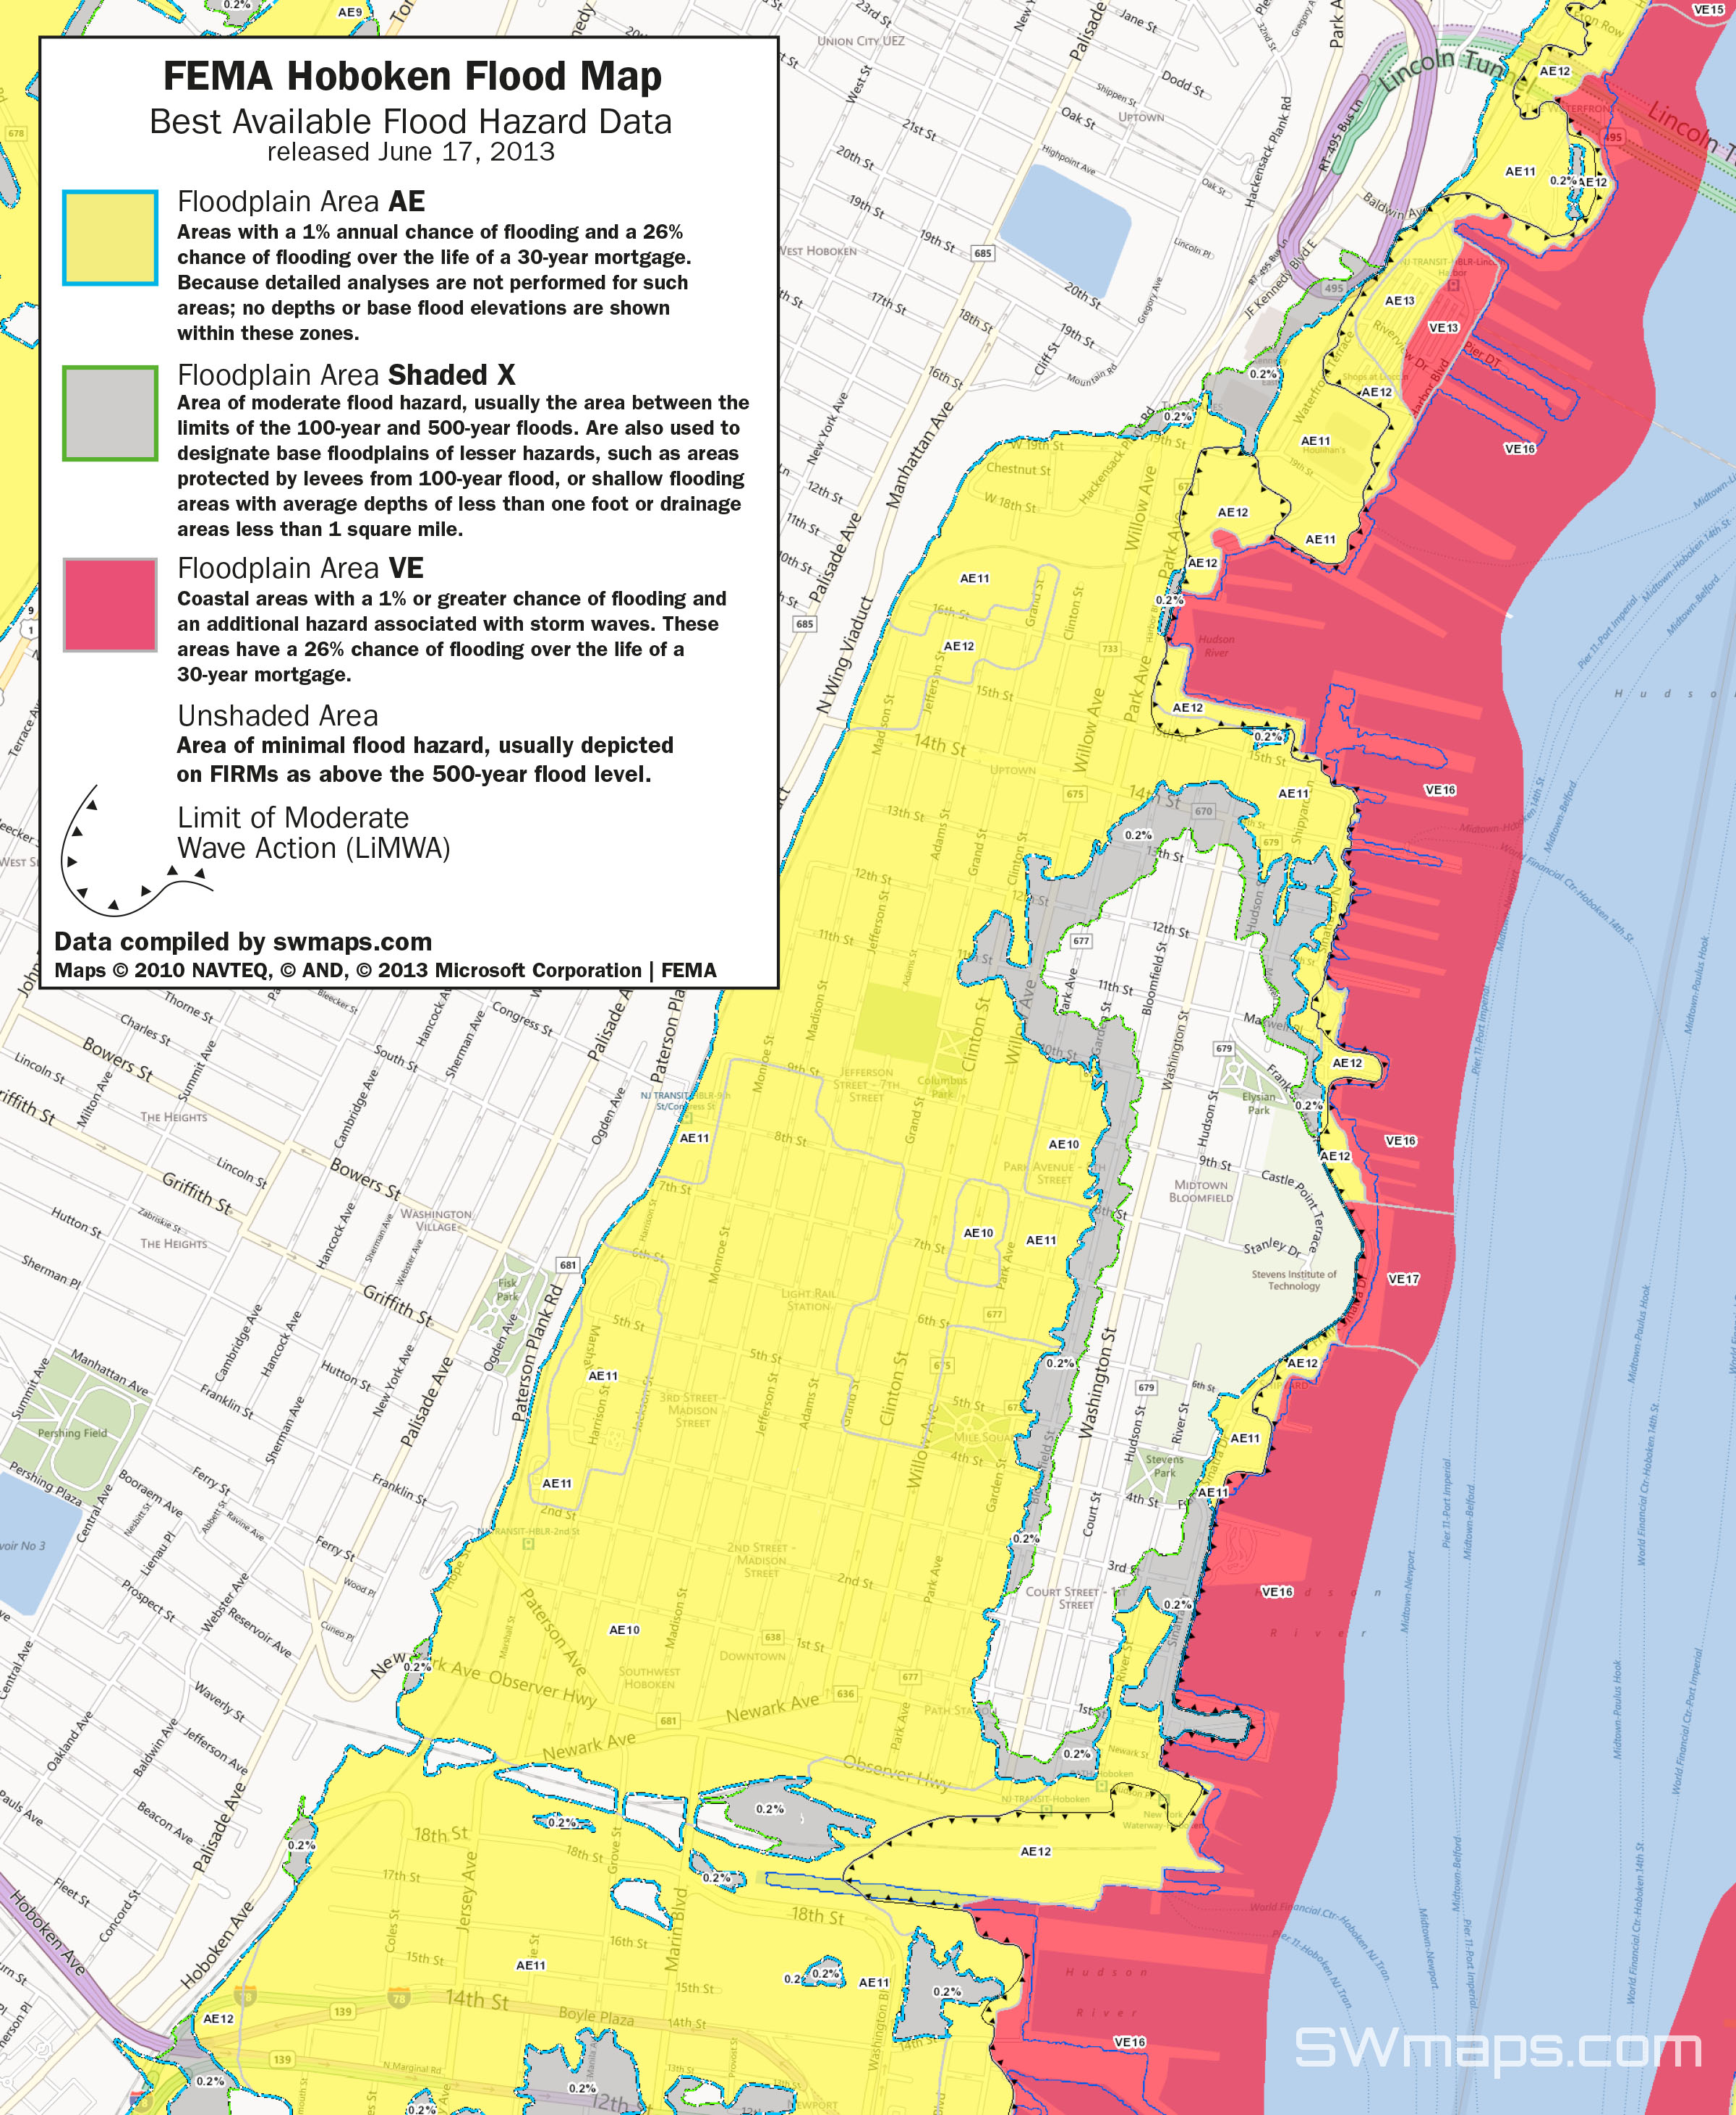 New Hoboken Flood Map FEMA Best Available Flood Hazard Data - Current fema flood maps